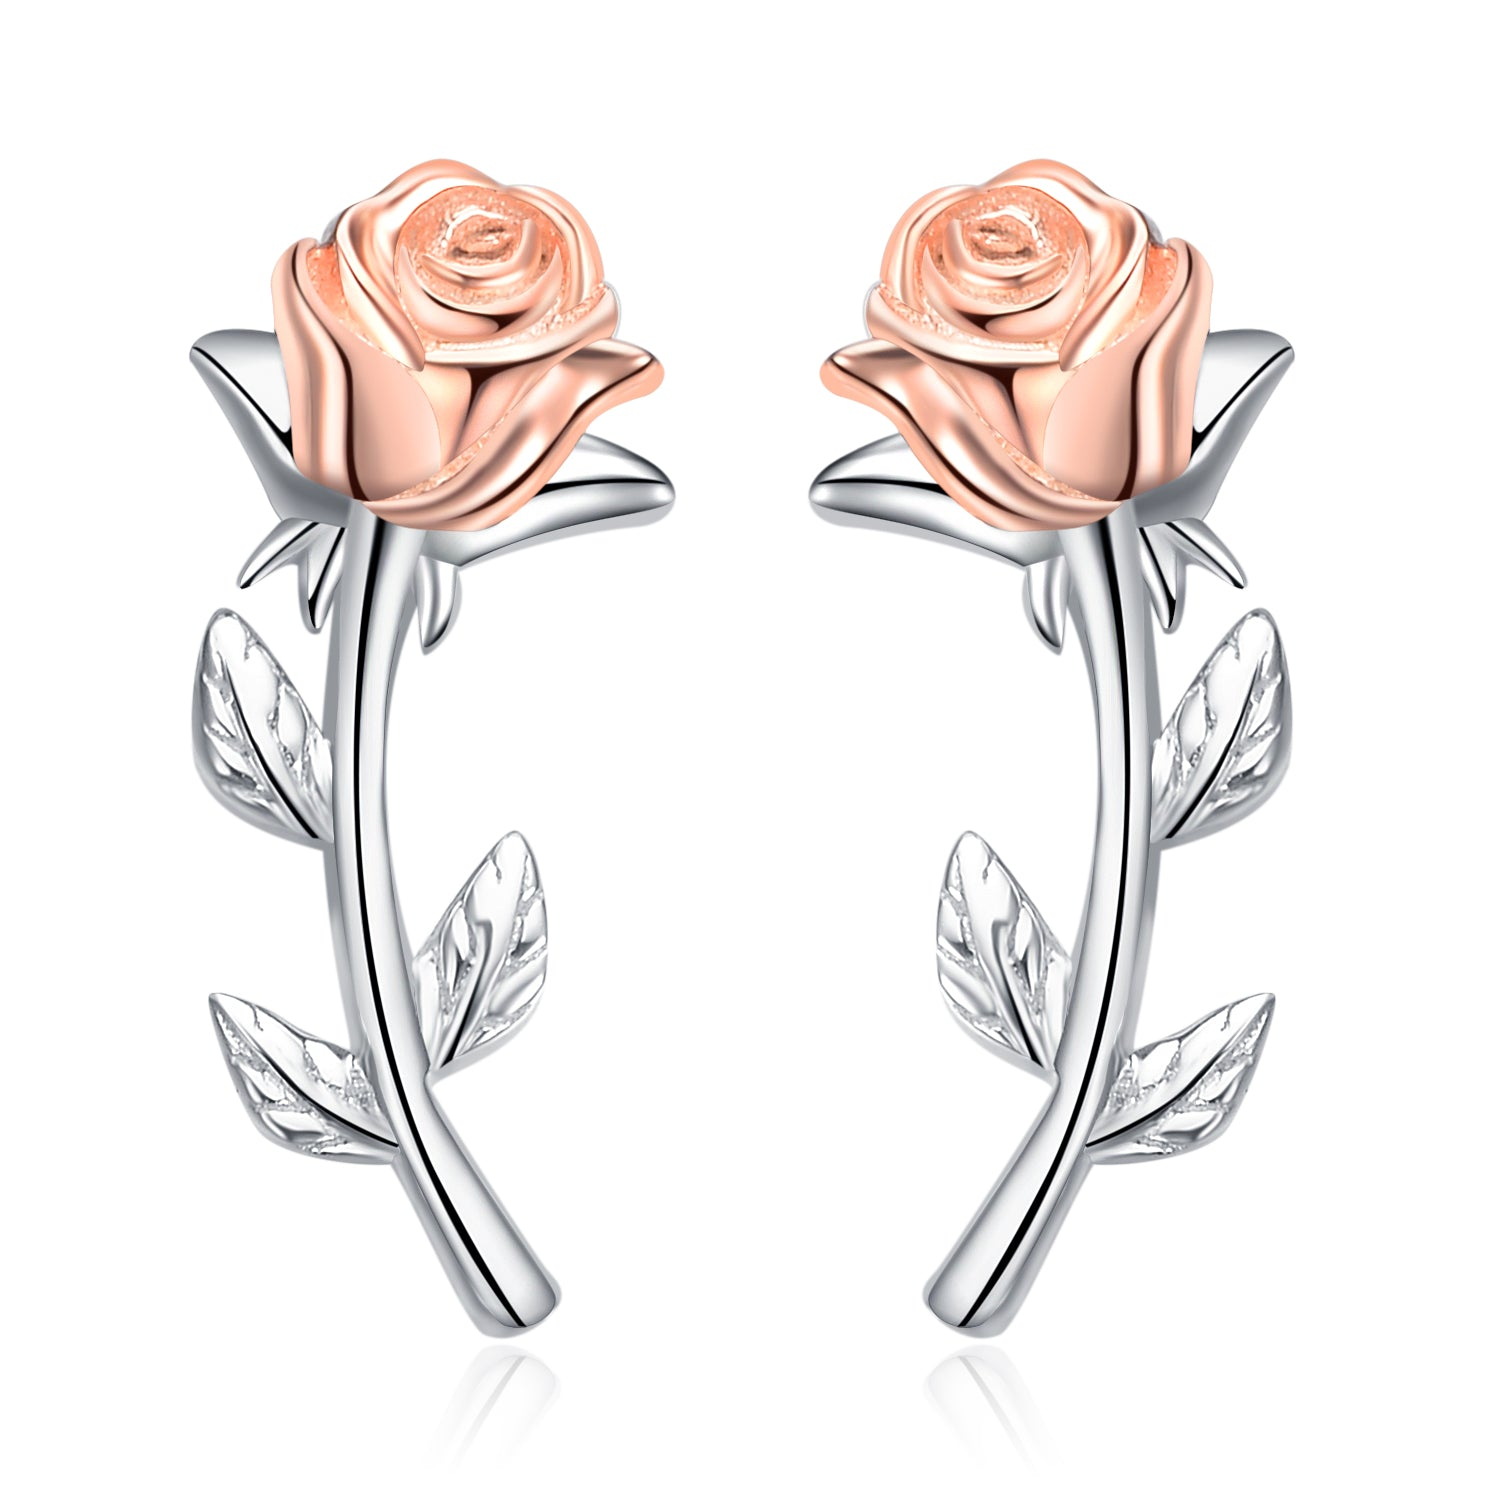 Rose Earrings China Factory Charming Jewelry Earrings Simplify Stick Stud Earrings